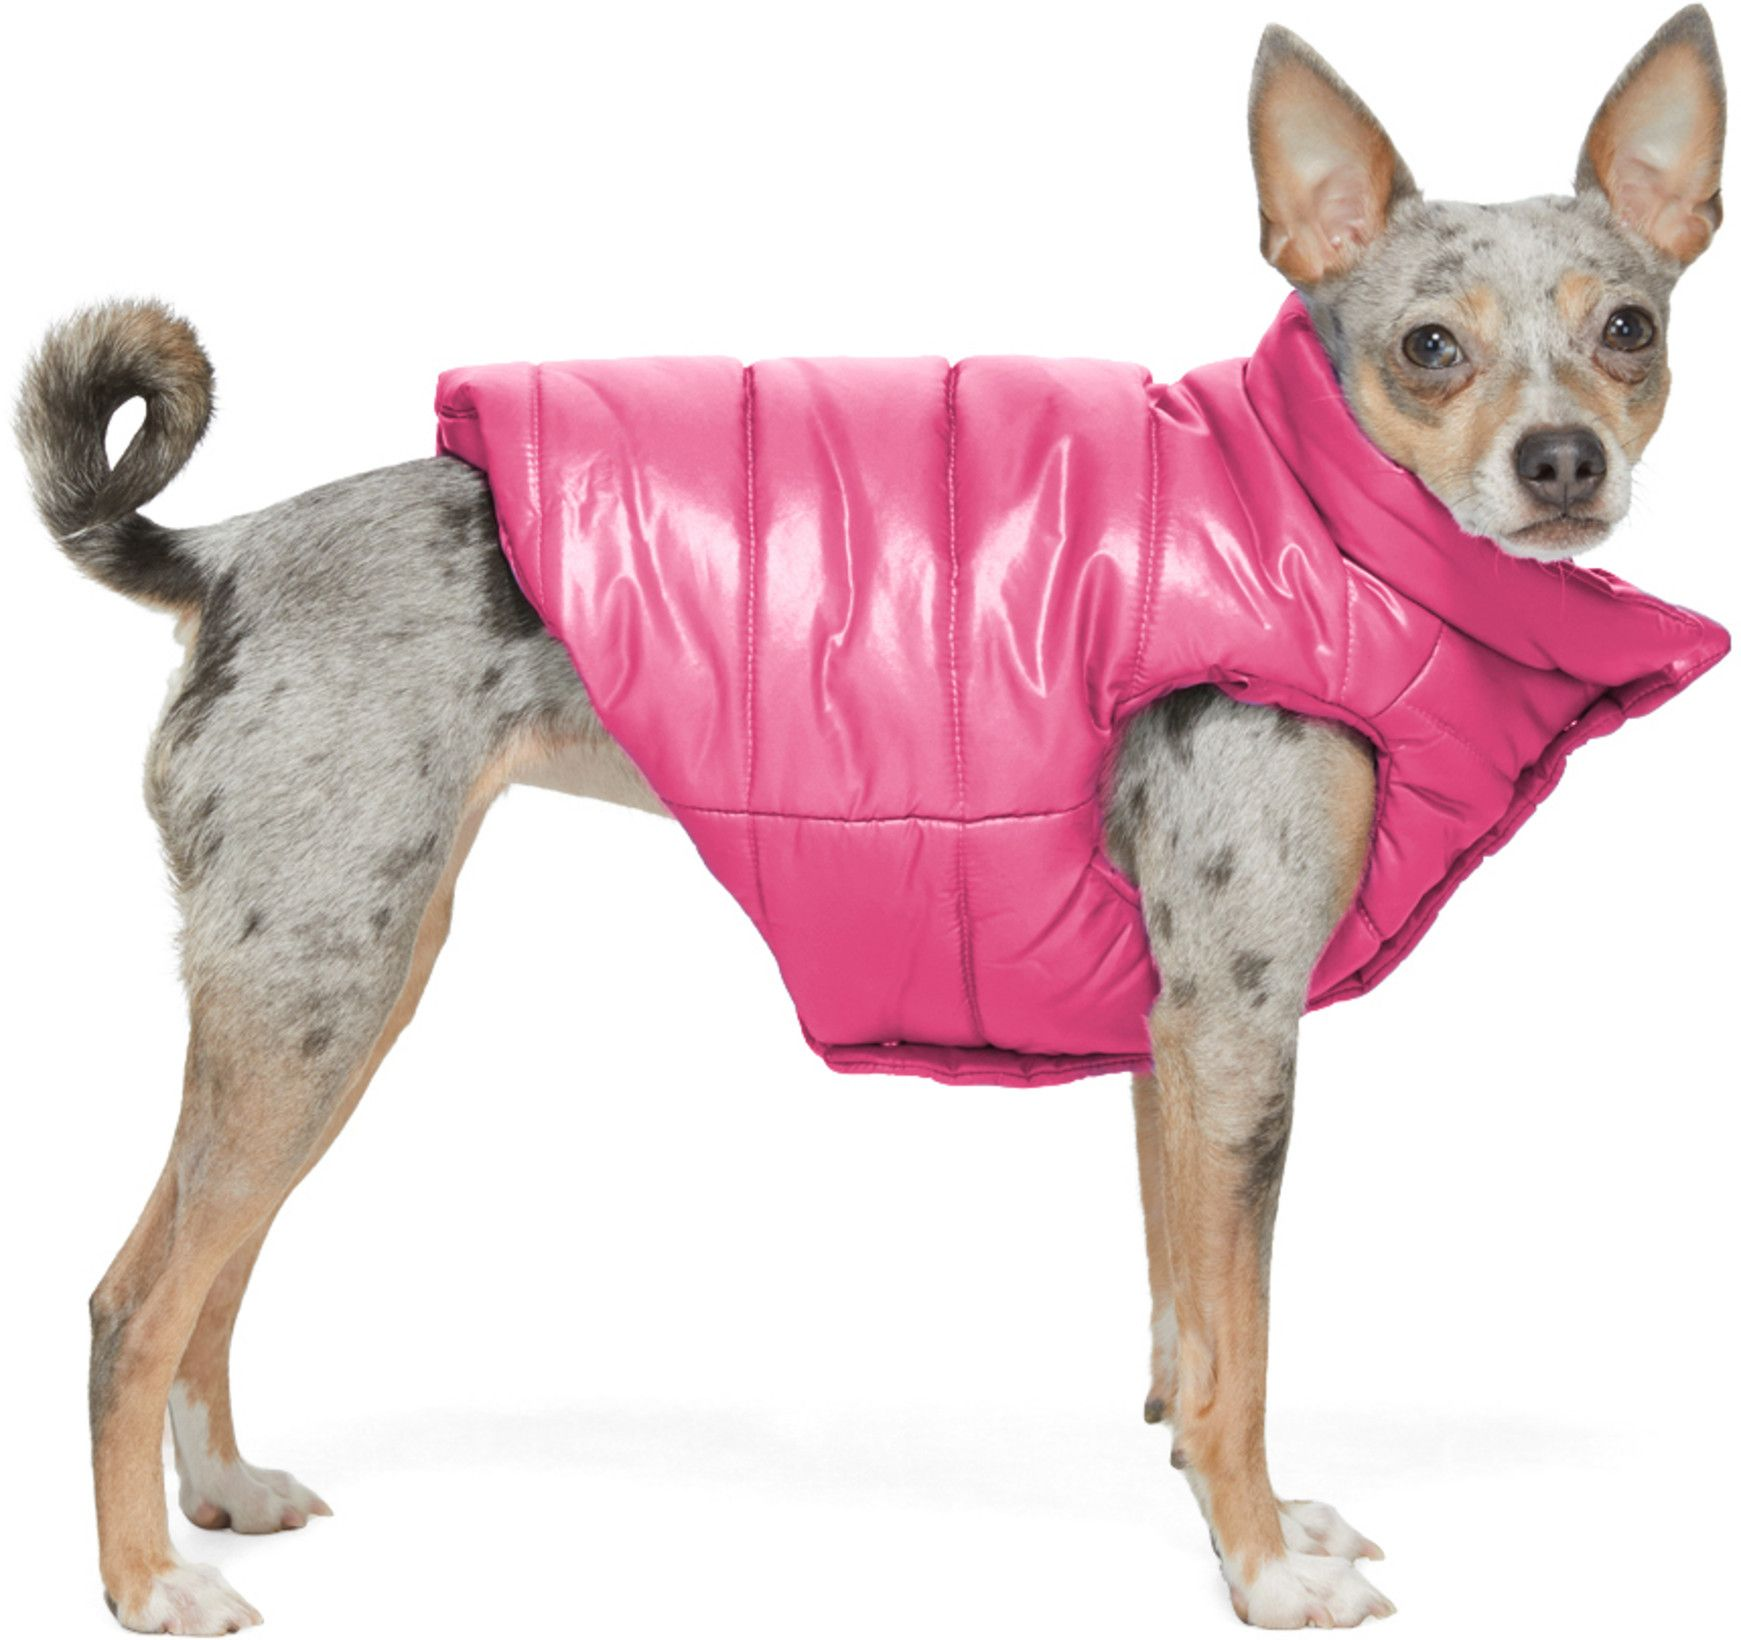 Moncler Genius Pink Poldo Dog Couture Edition Insulated Jacket Ssense In 2021 Moncler Dog Lovers Dogs [ 1640 x 1741 Pixel ]